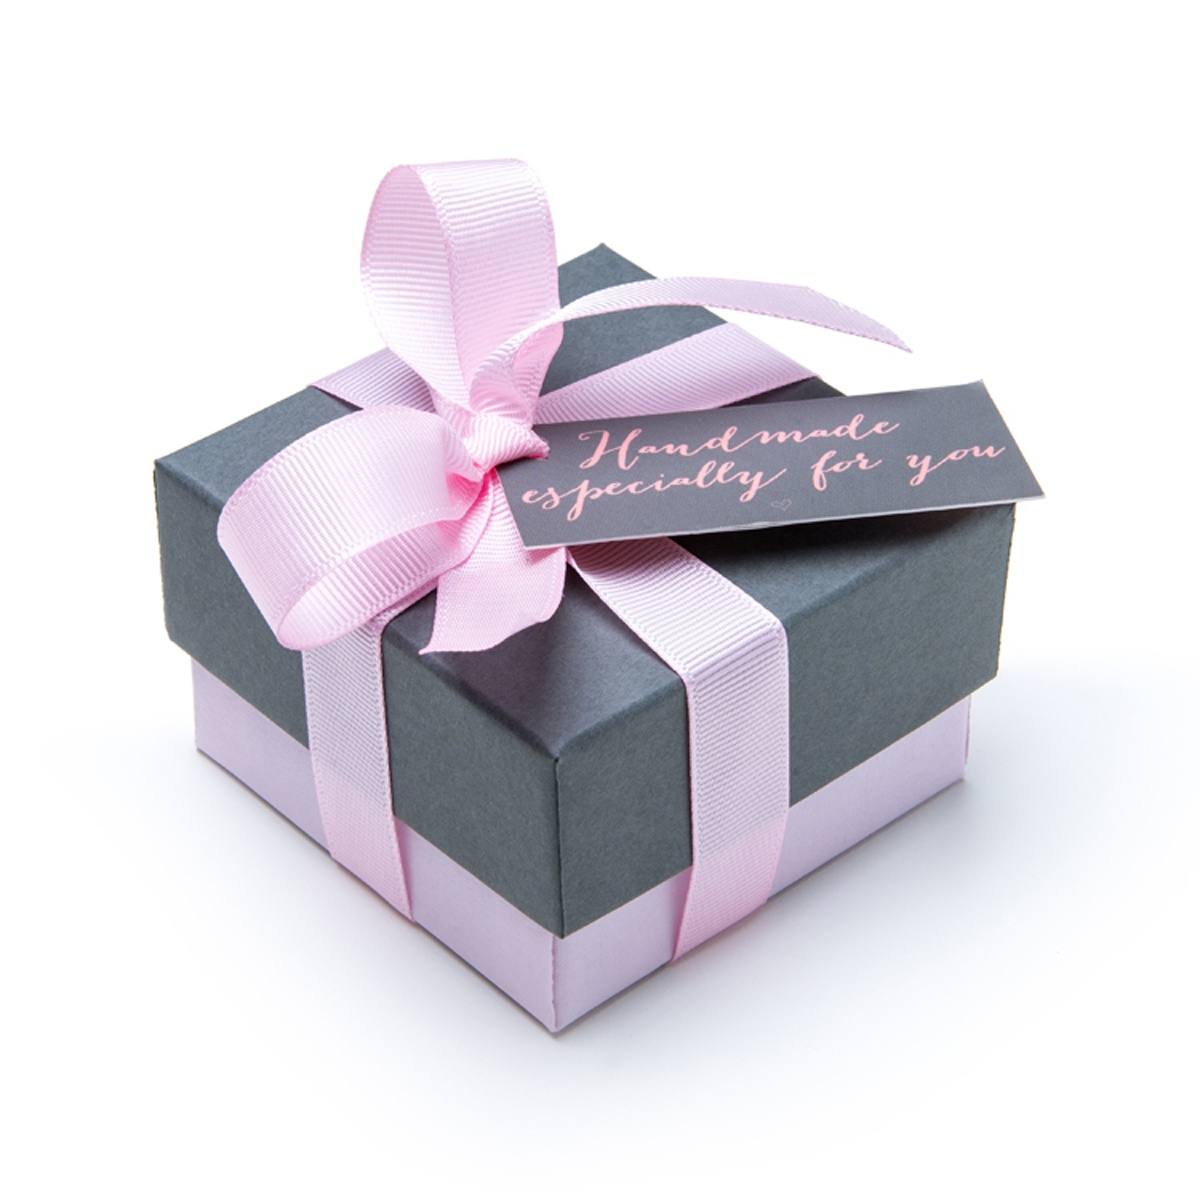 Gorgeous Box for all Kimberley Selwood's handmade jewellery. Each piece come boxed